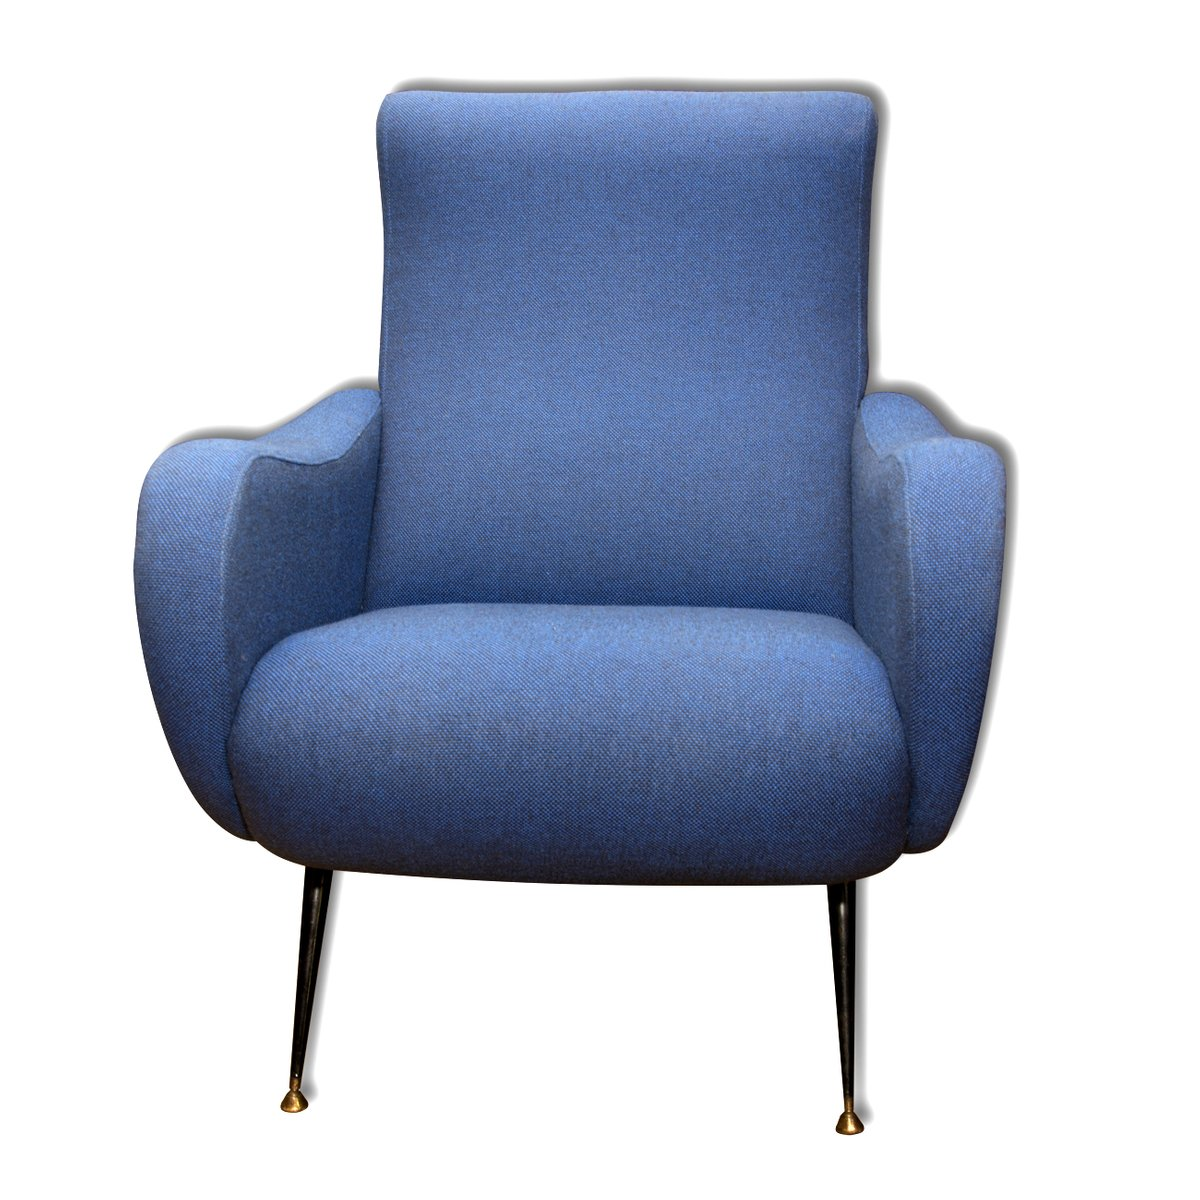 Blue Italian Armchairs 1960s Set Of 2 For Sale At Pamono